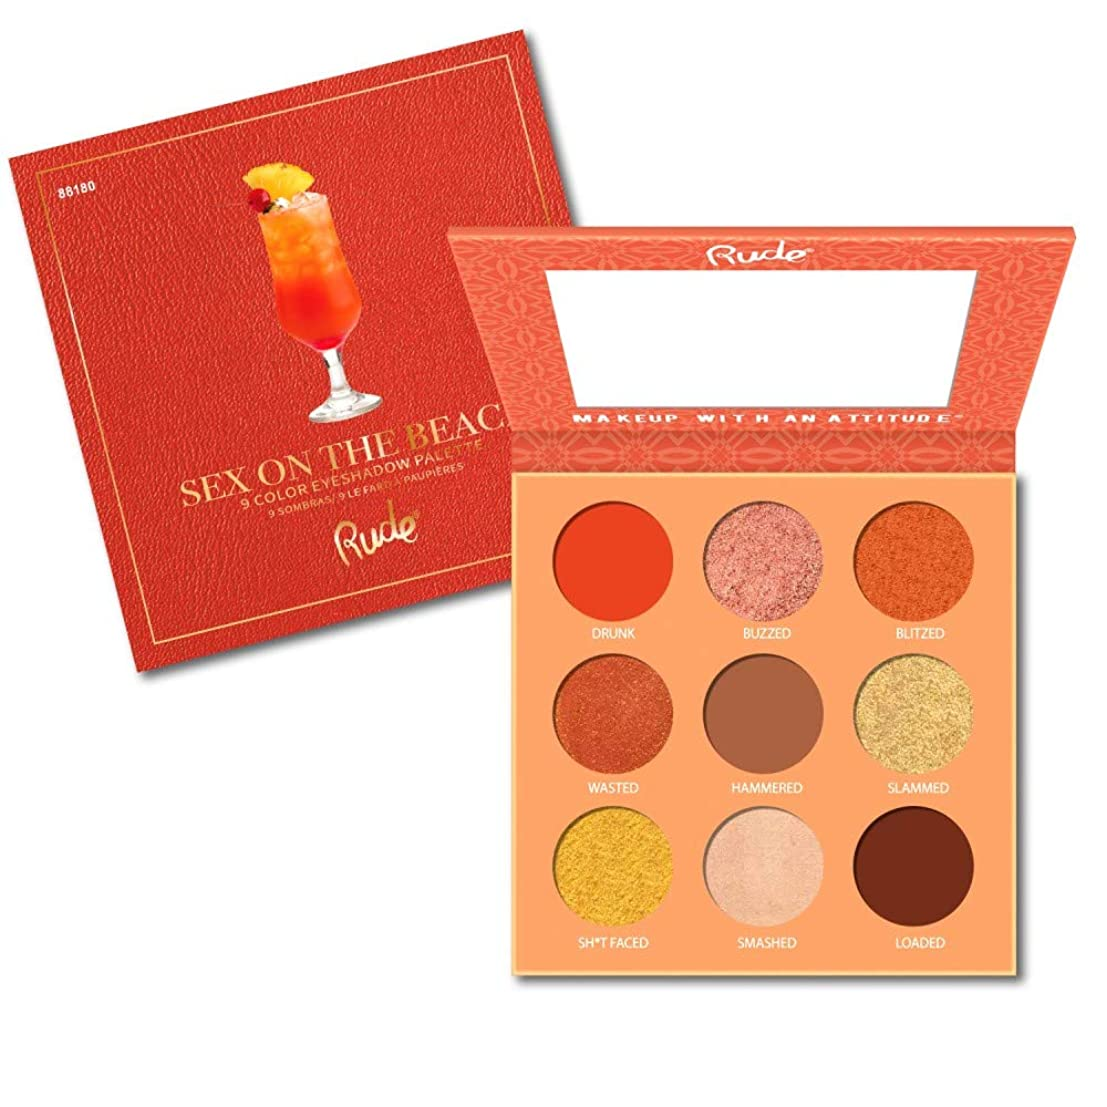 業界黙平らな(6 Pack) RUDE Cocktail Party 9 Color Eyeshadow Palette - Sex on The Beach (並行輸入品)